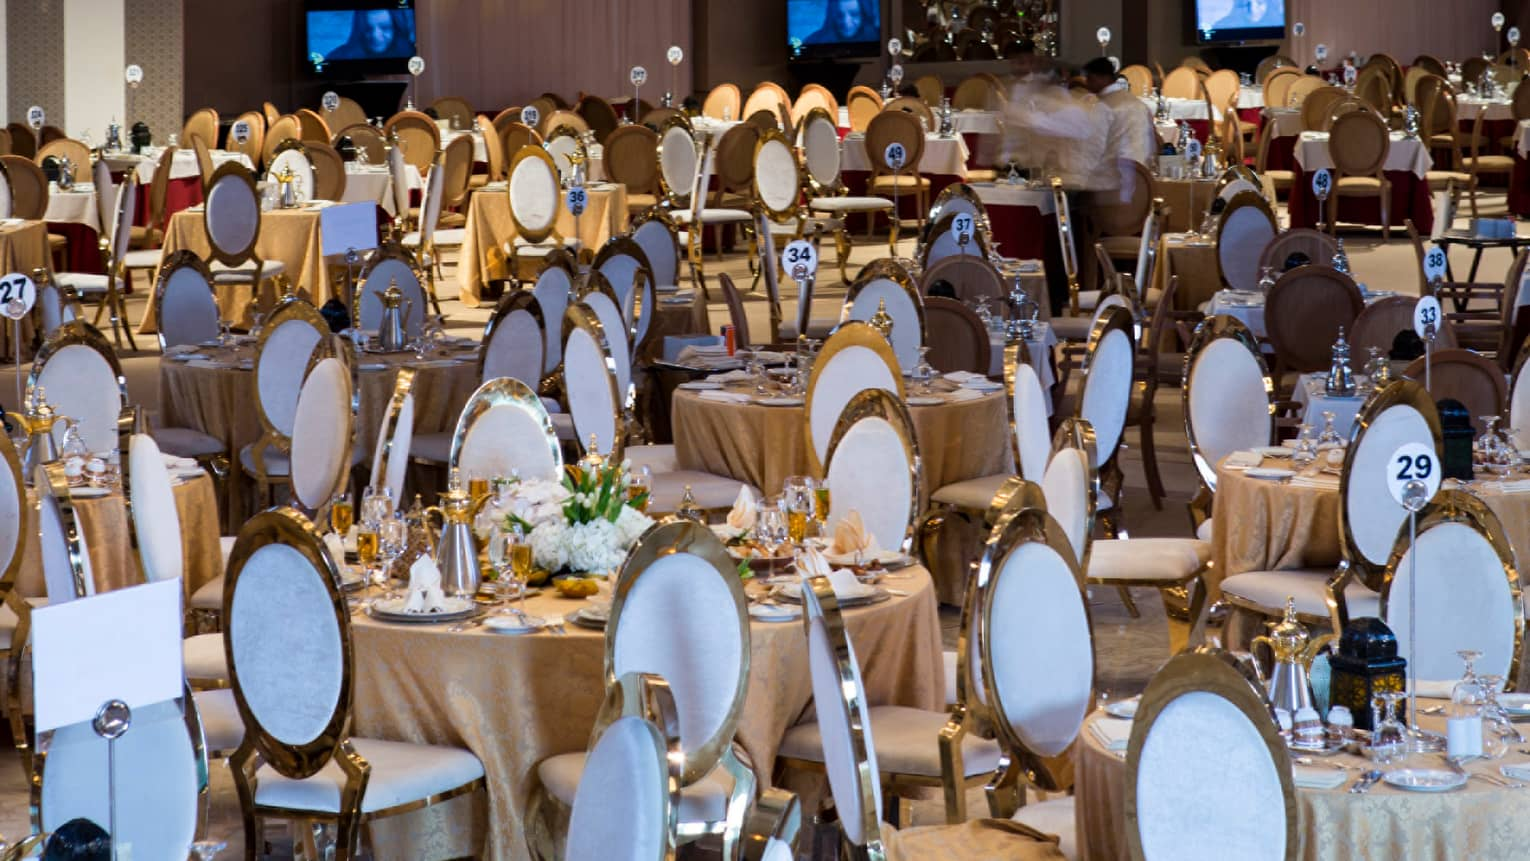 Hotel ballroom dining chairs below tall ceiling where large, elaborate silver lamps and chandeliers hang